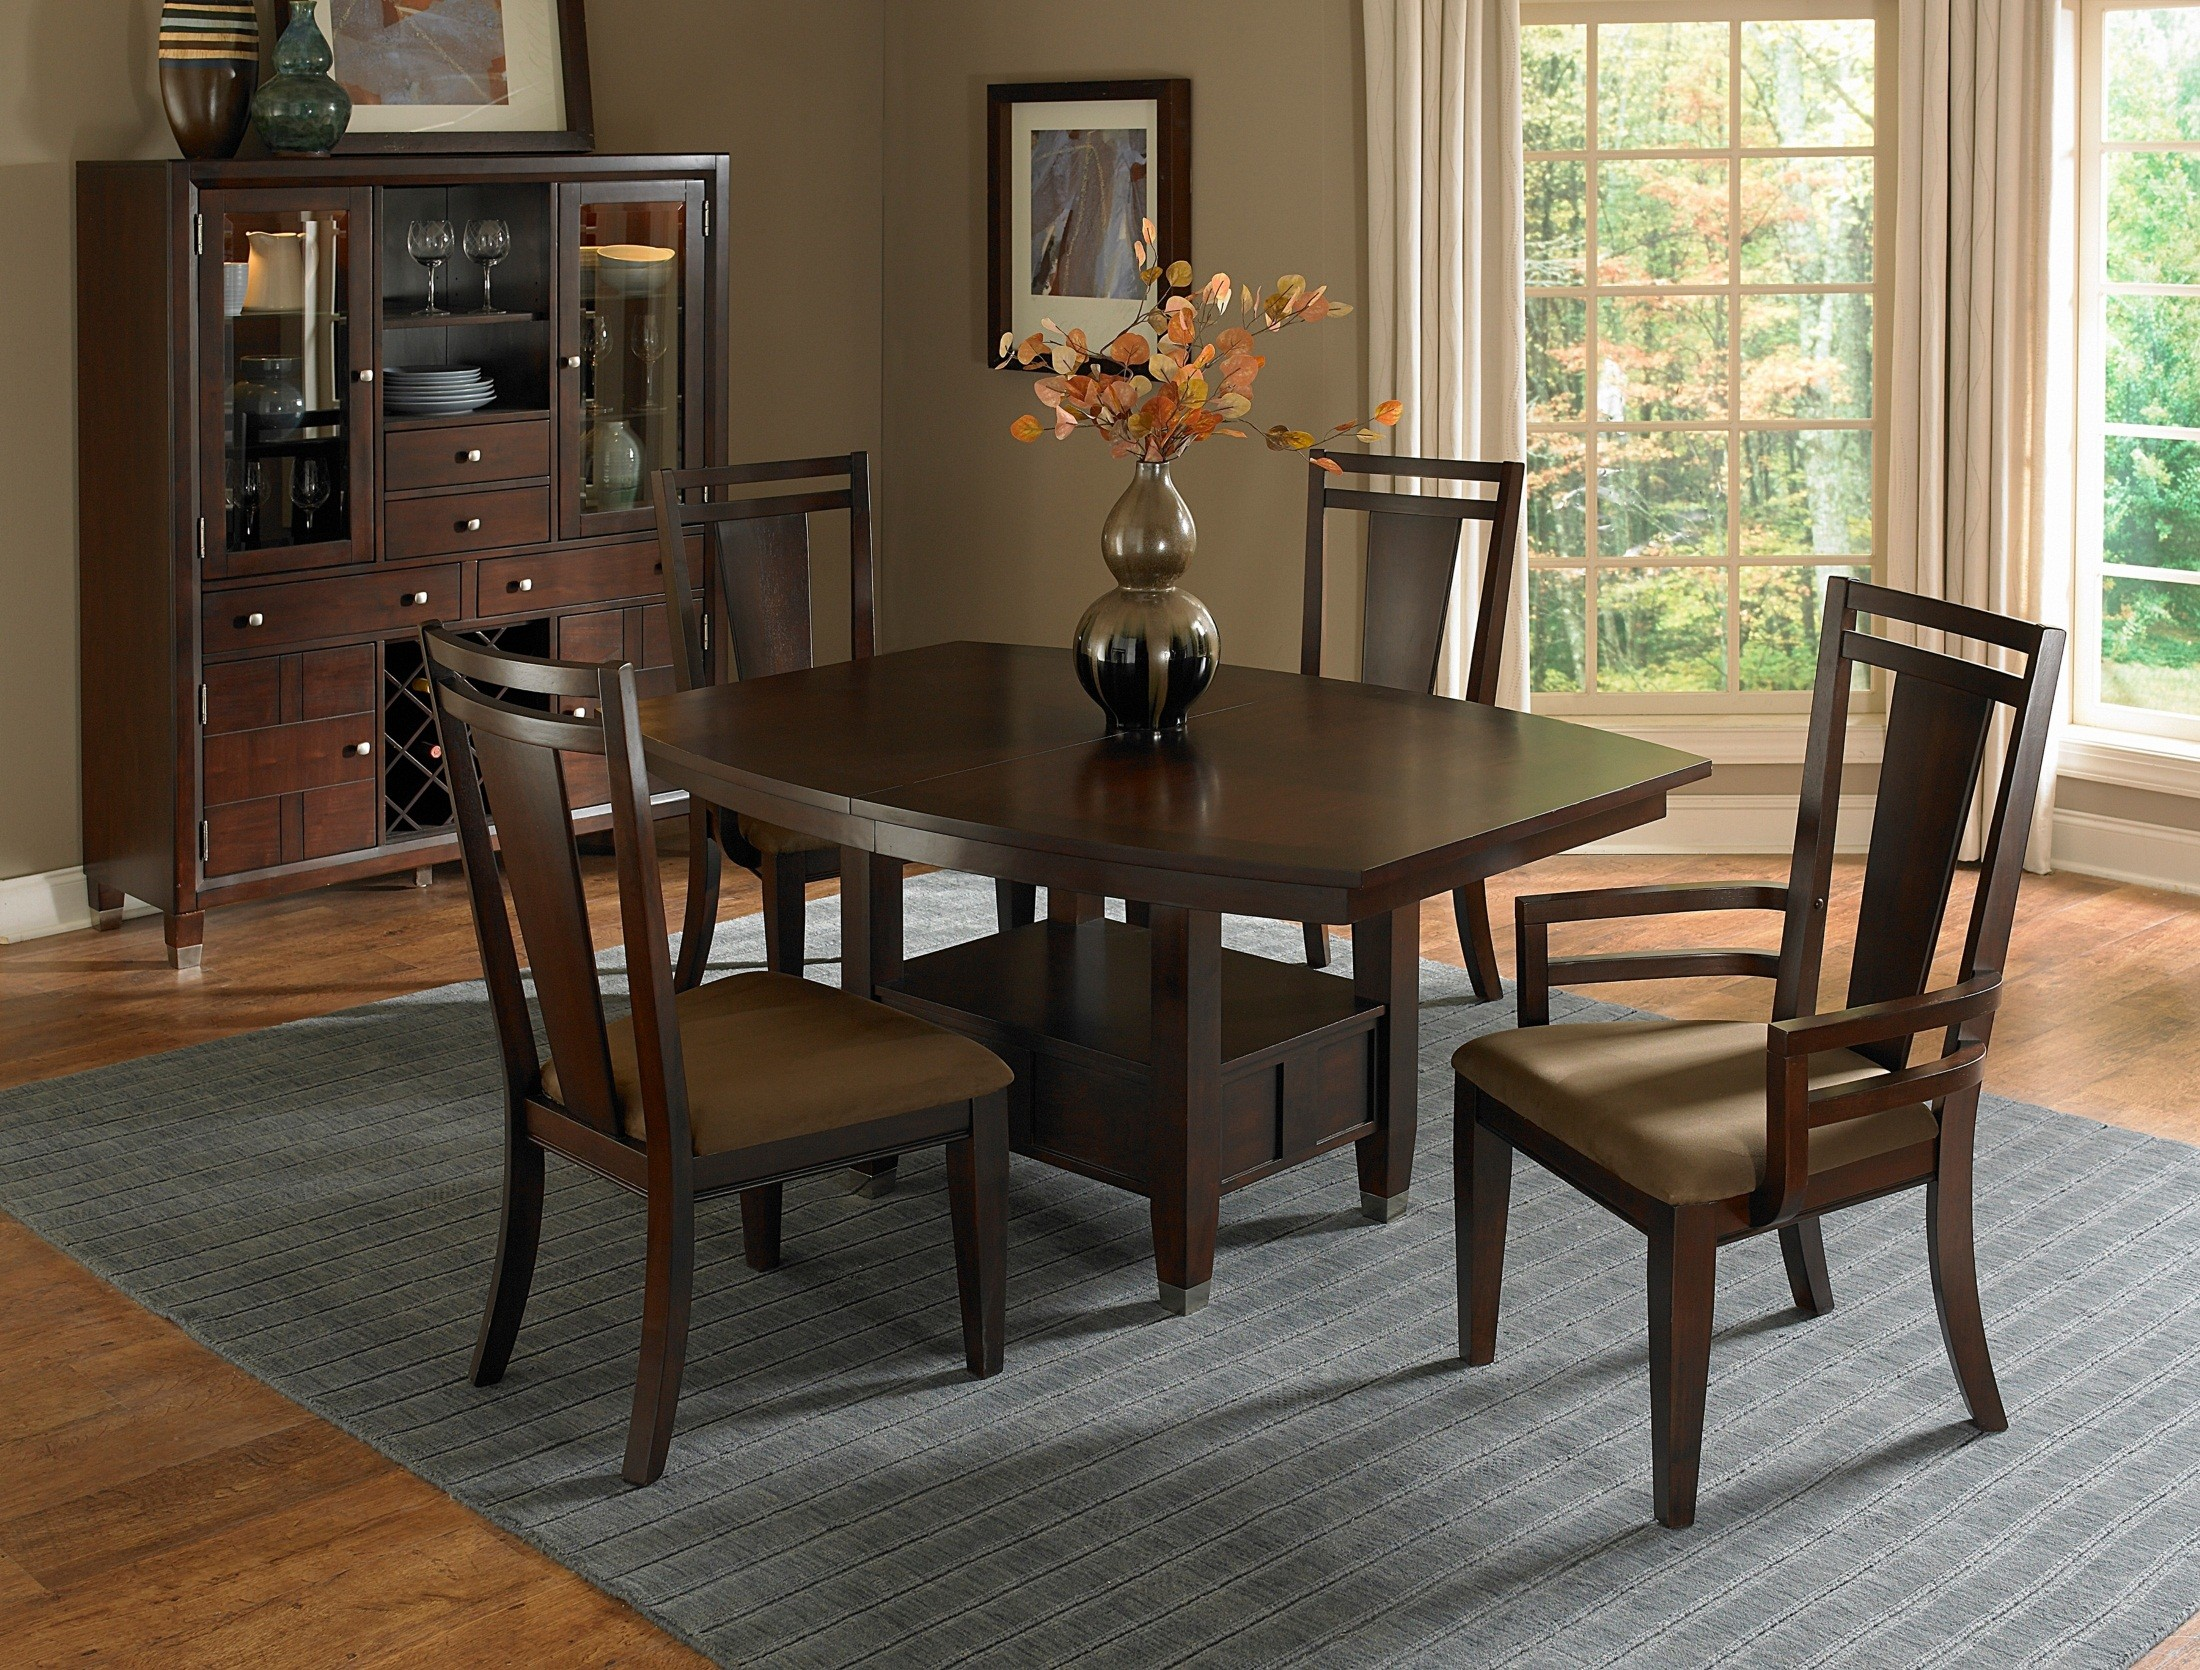 Northern Lights Extendable Dining Room Set from Broyhill | Coleman ...